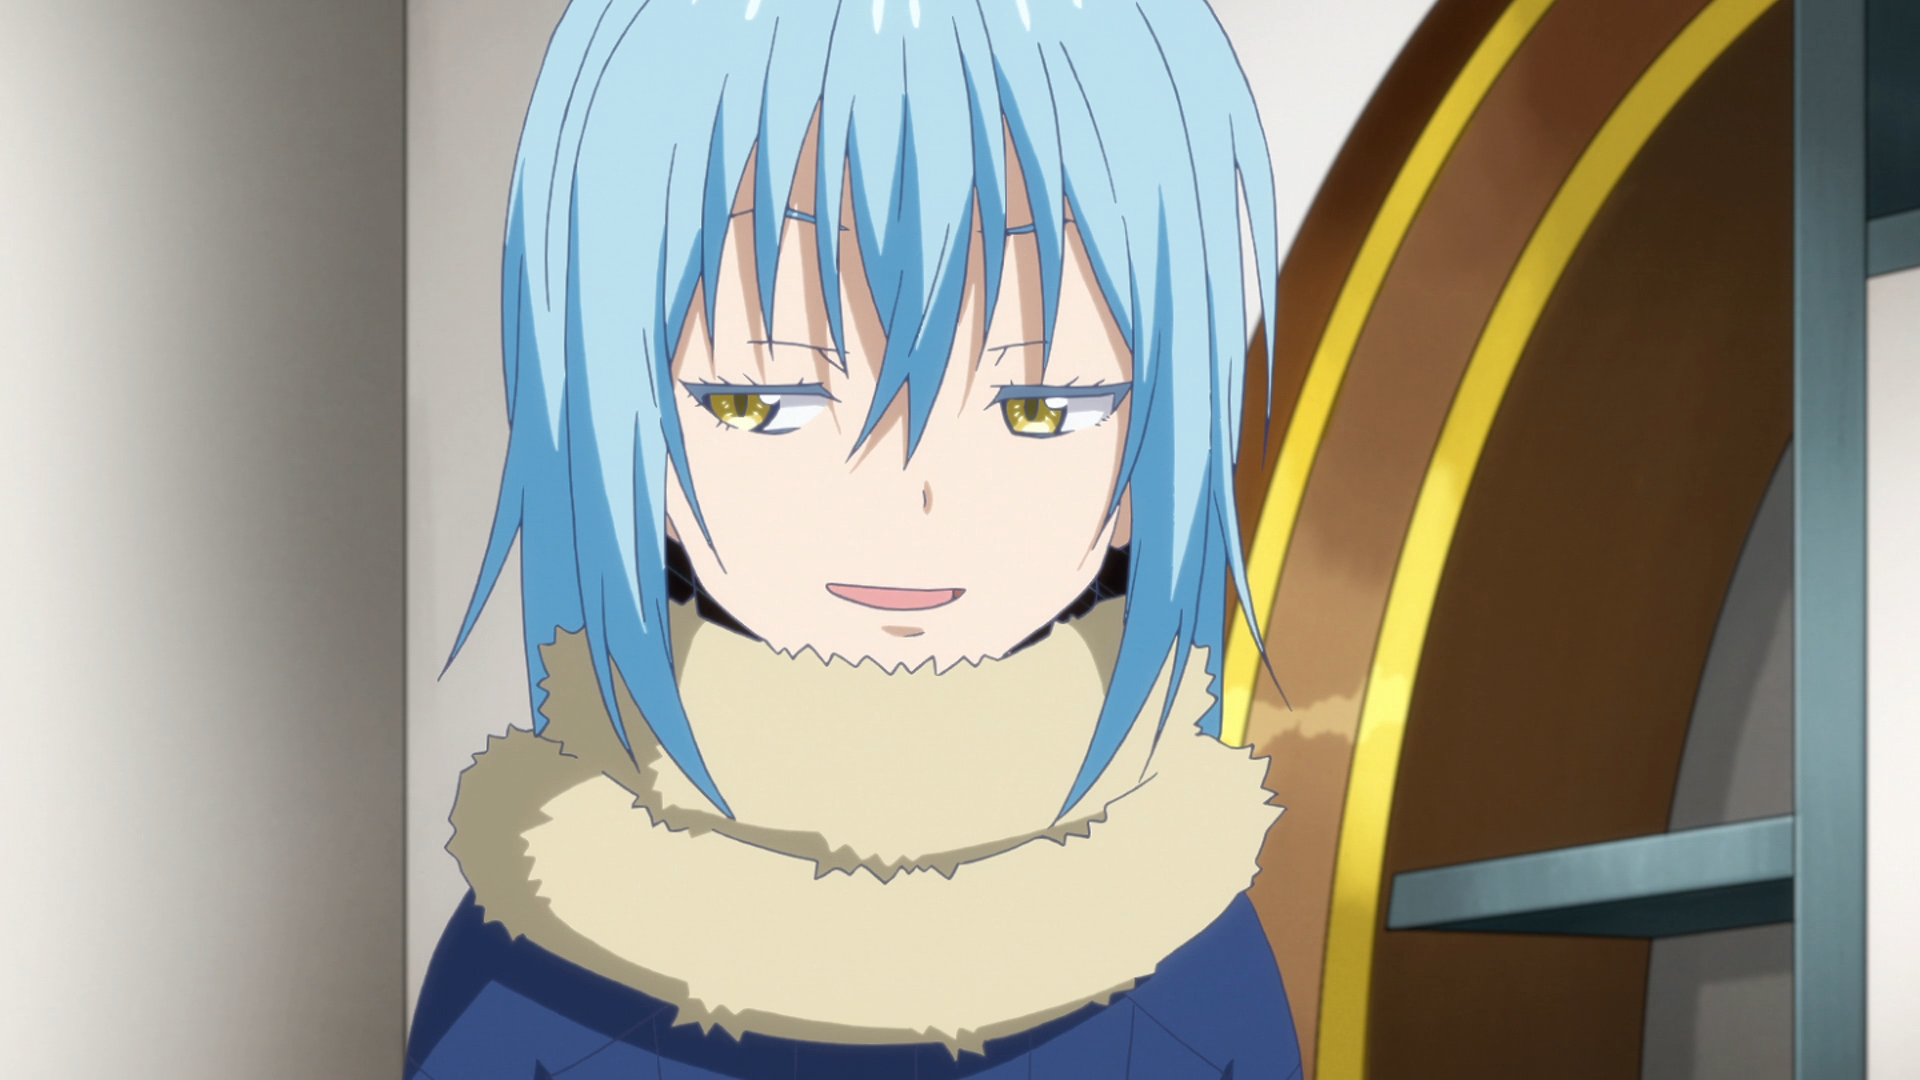 In human form, Rimiru sports a smug expression while attempting to introduce himself to Shizu's students in a scene from the That Time I Got Reincarnated as a Slime TV anime.